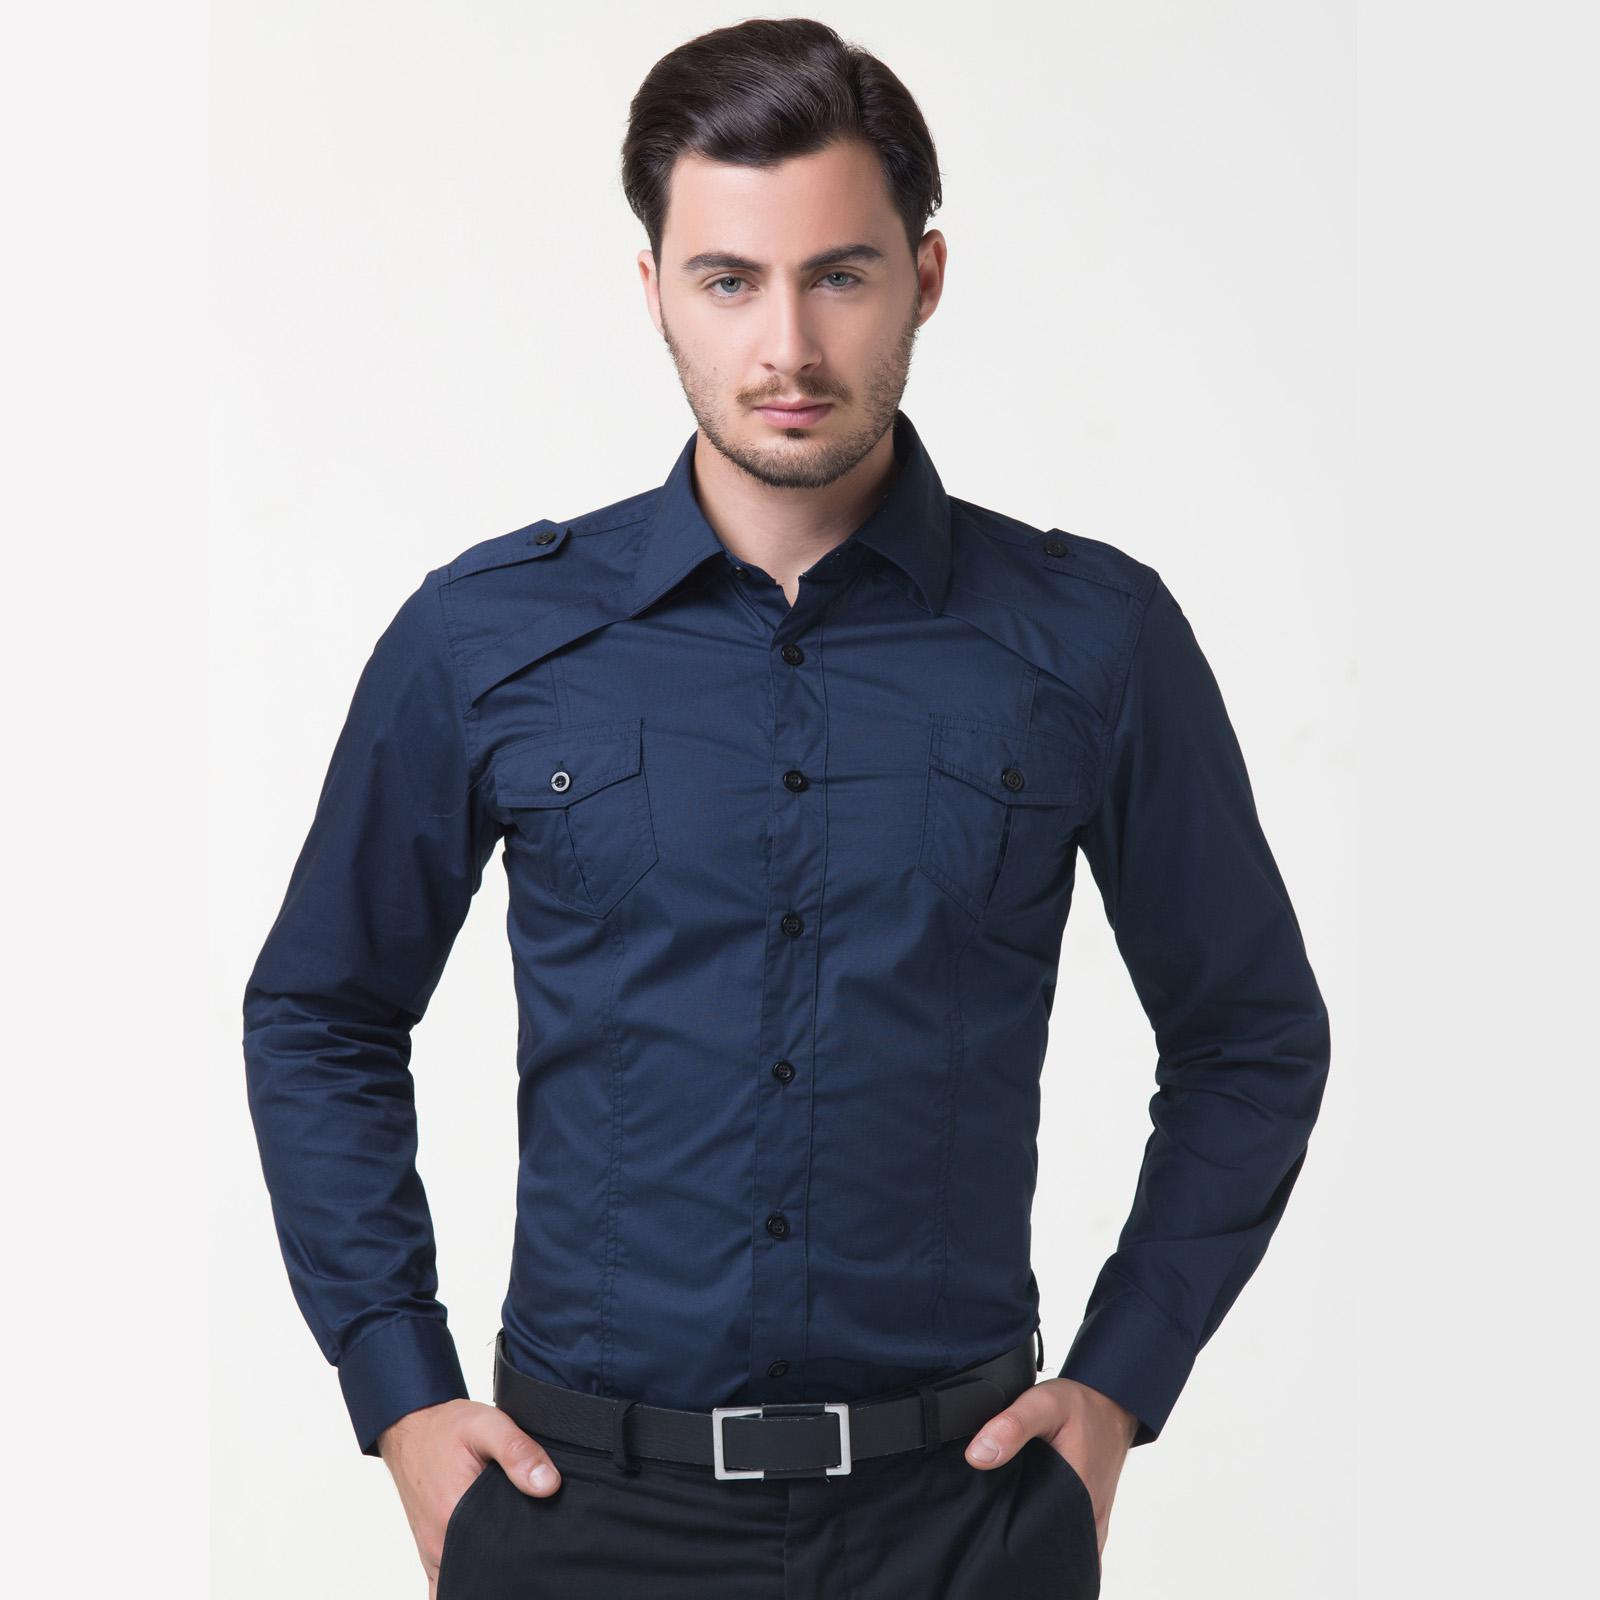 Find great deals on eBay for mens navy dress shirt. Shop with confidence.